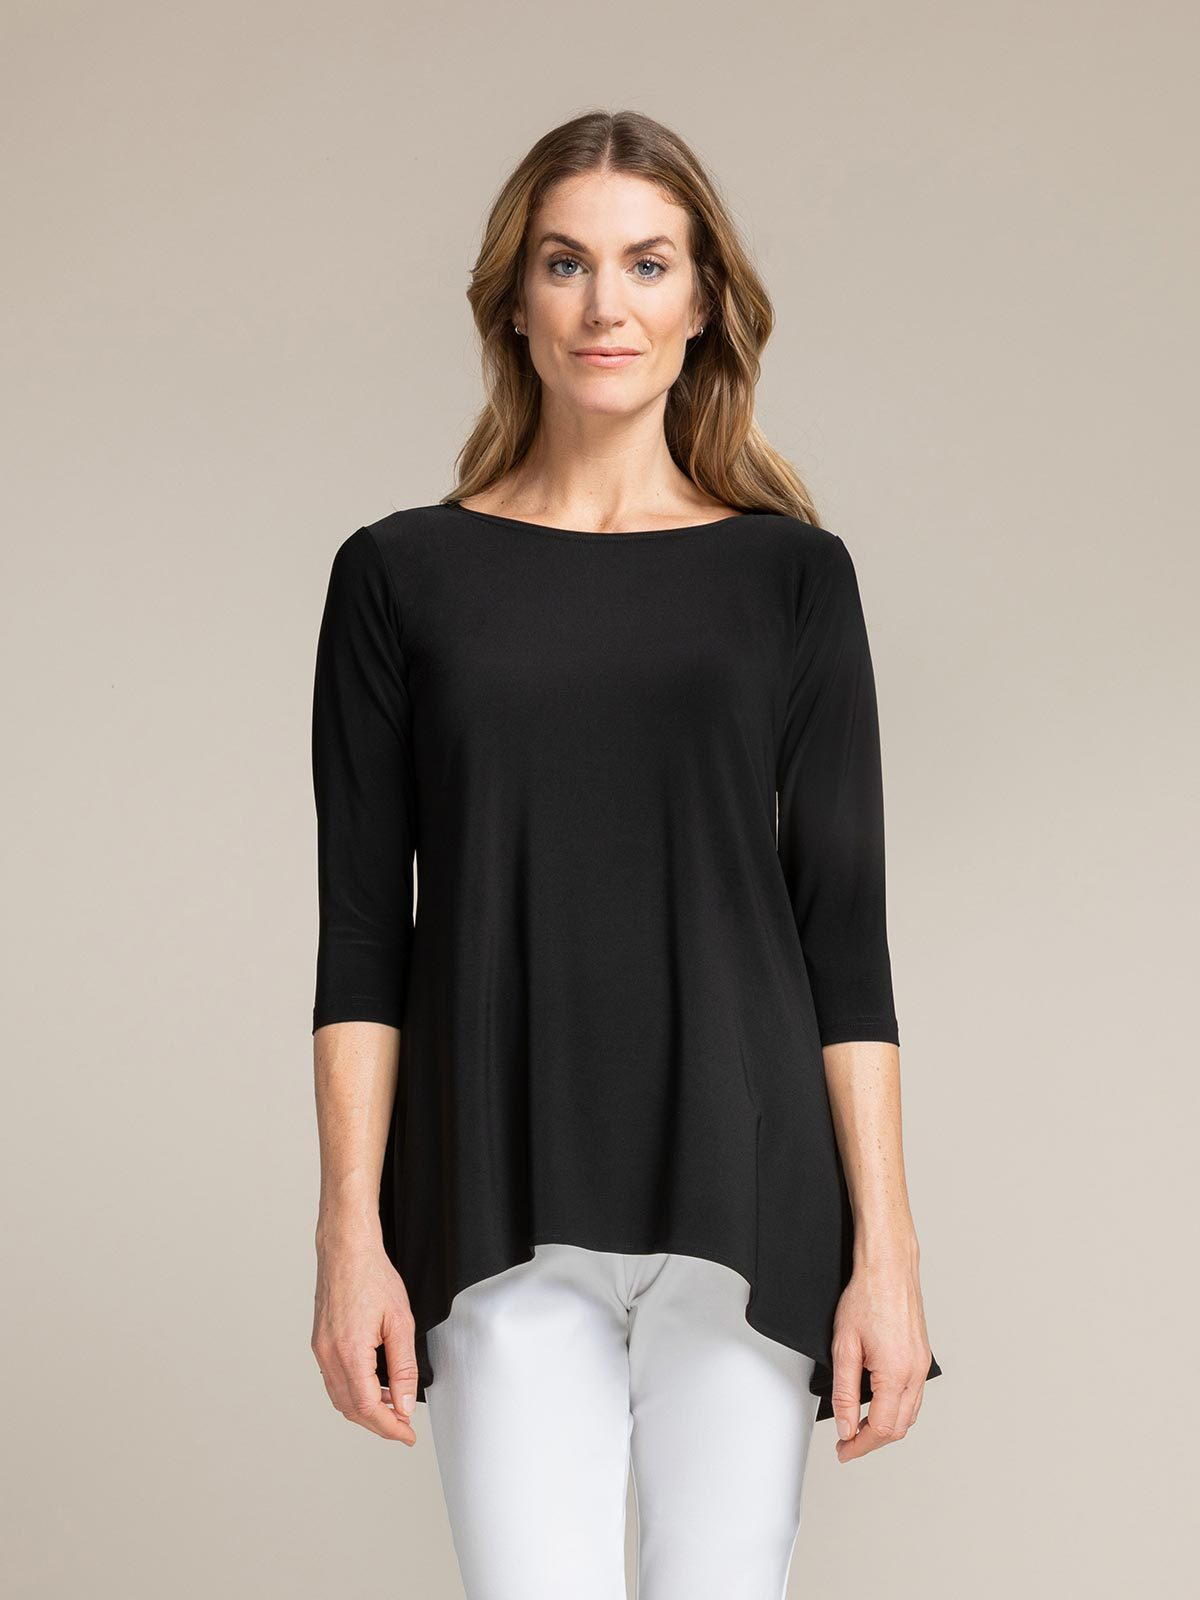 Sympli - True T 3/4 Sleeve - Black